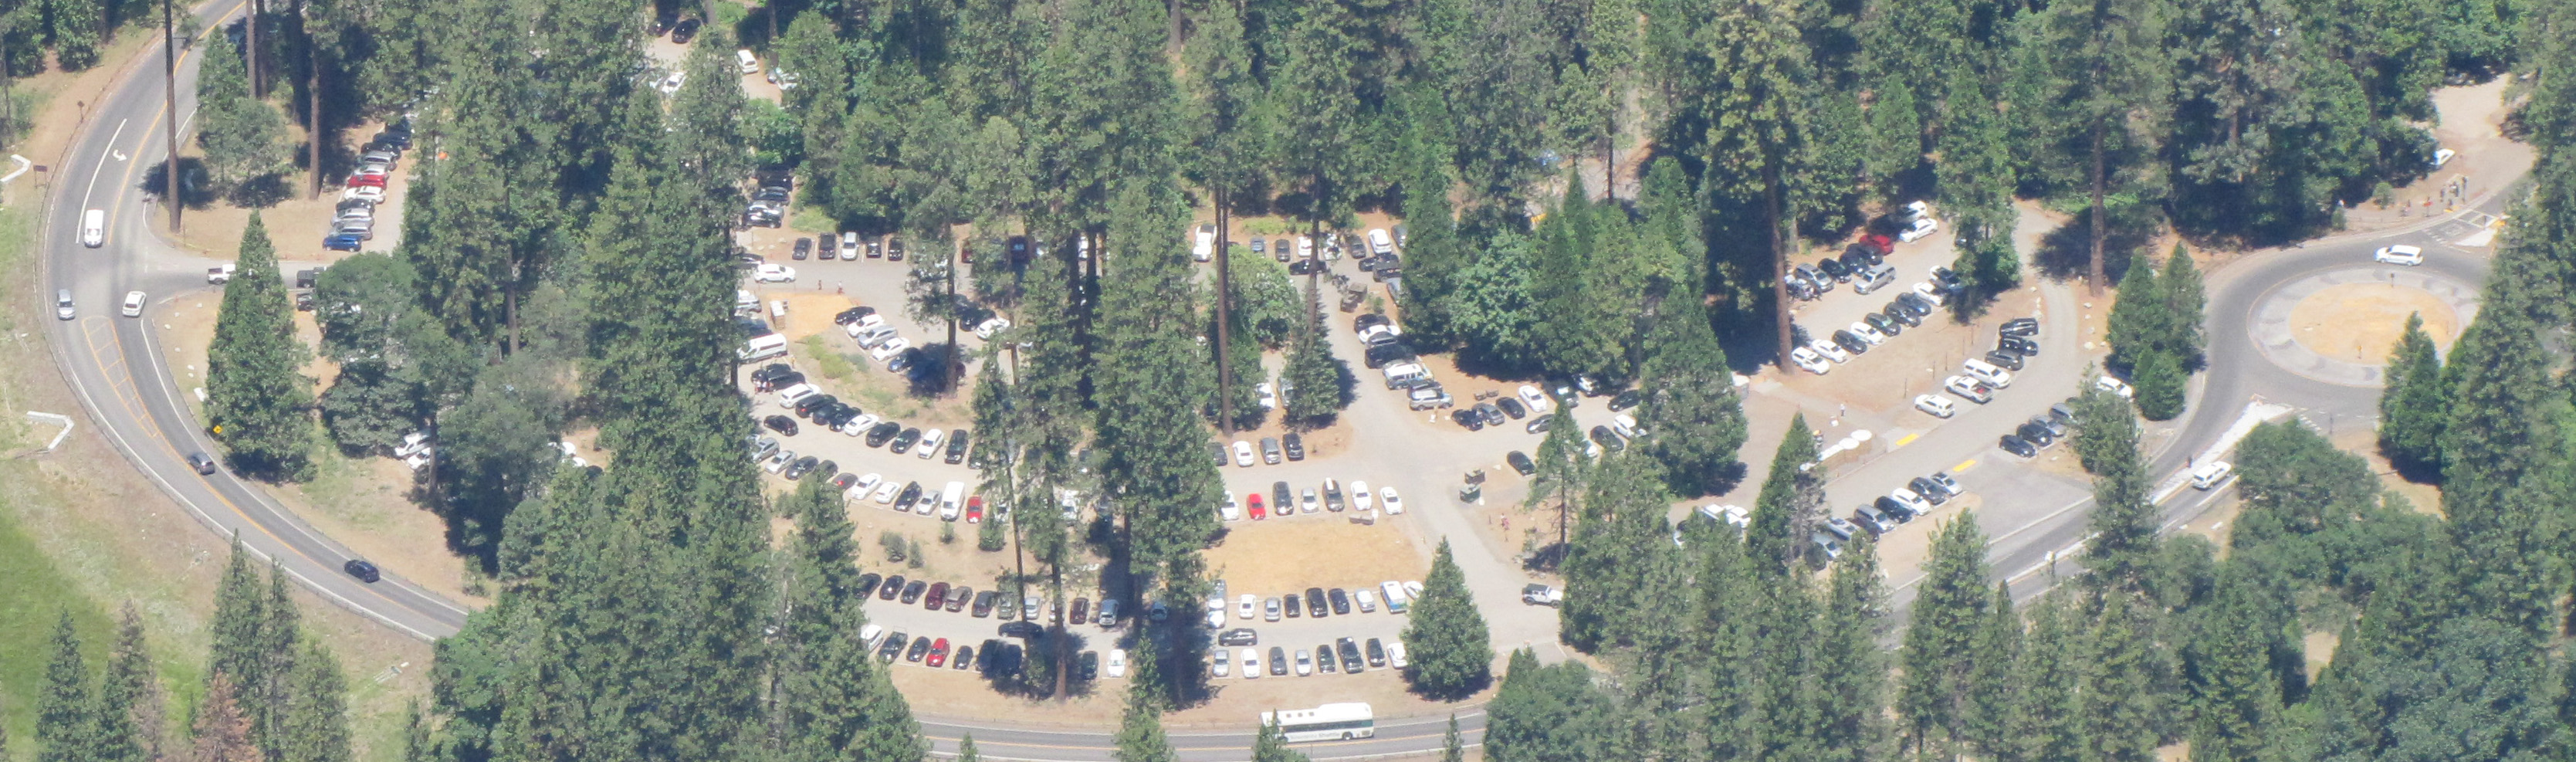 roadway and parking lot in forest